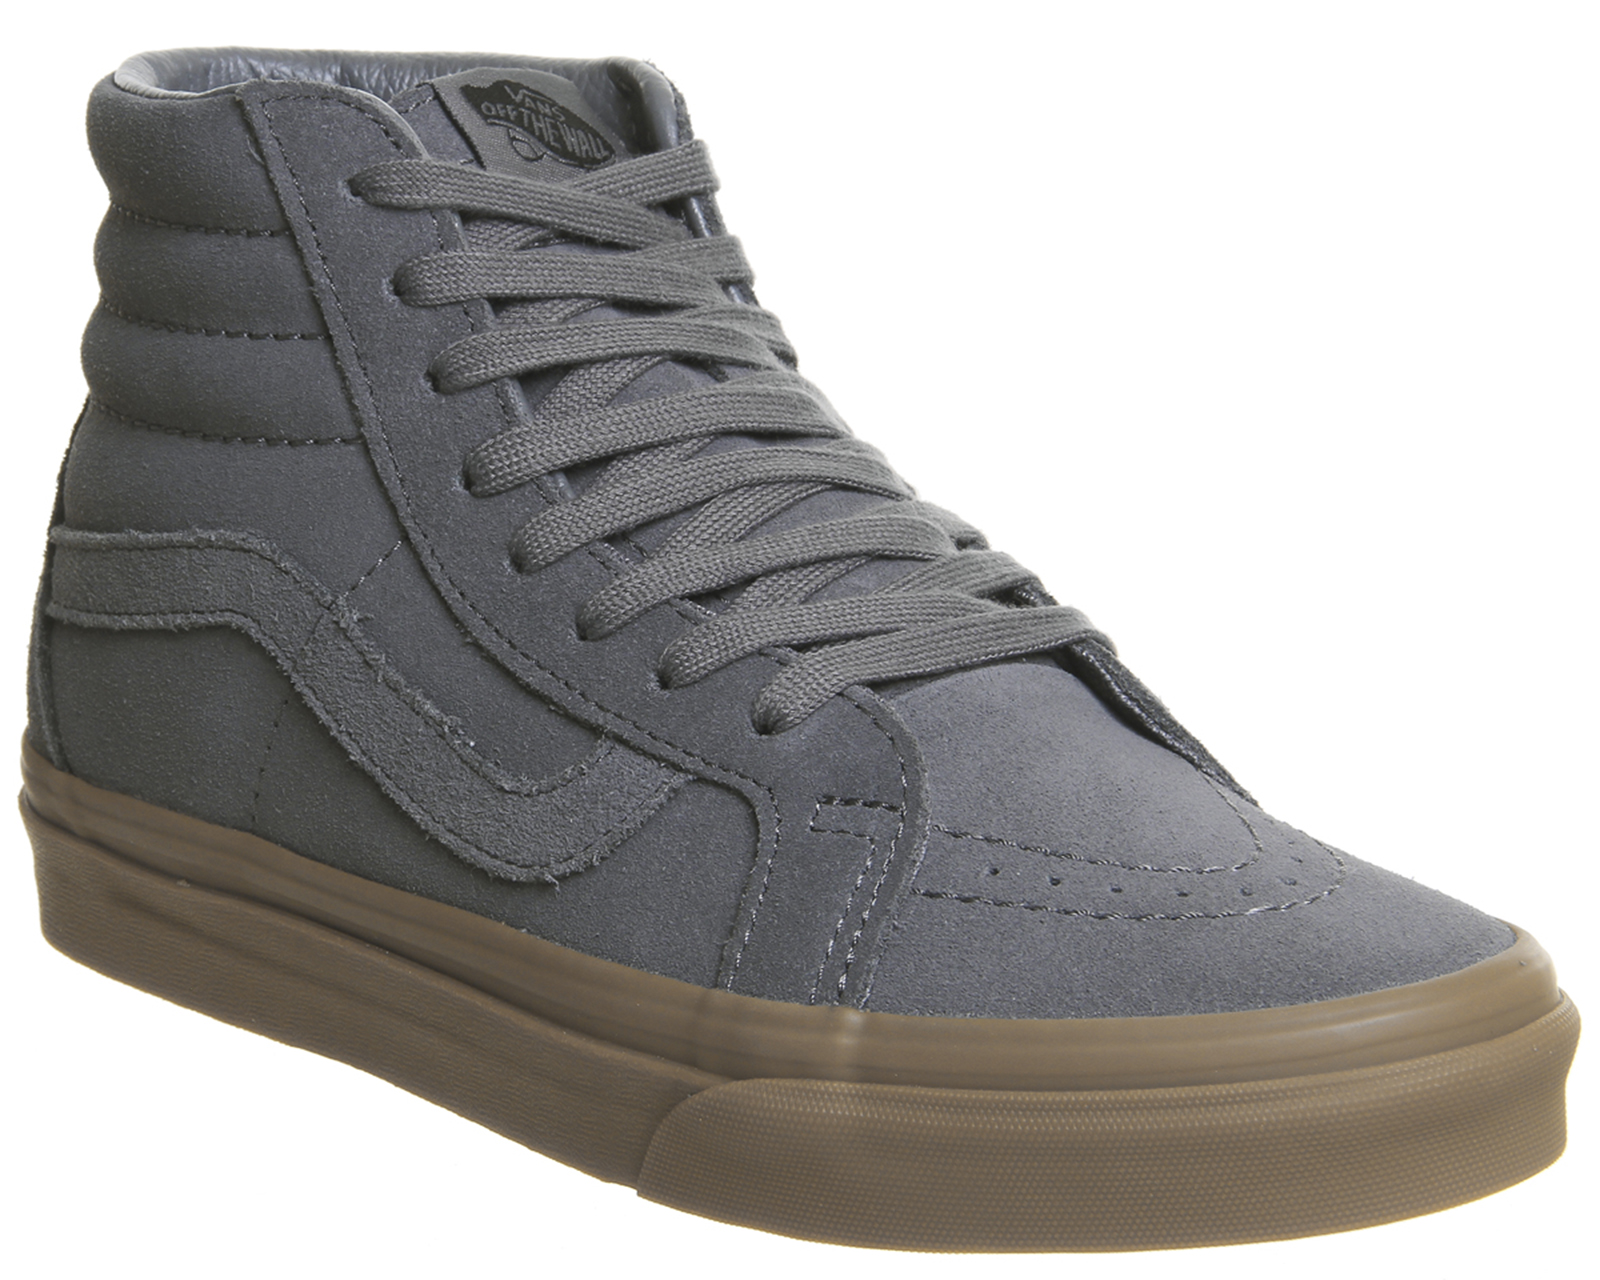 a21dad1ca2 Sentinel Mens Vans Sk8 Hi Trainers Grey Suede Gum Exclusive Trainers Shoes